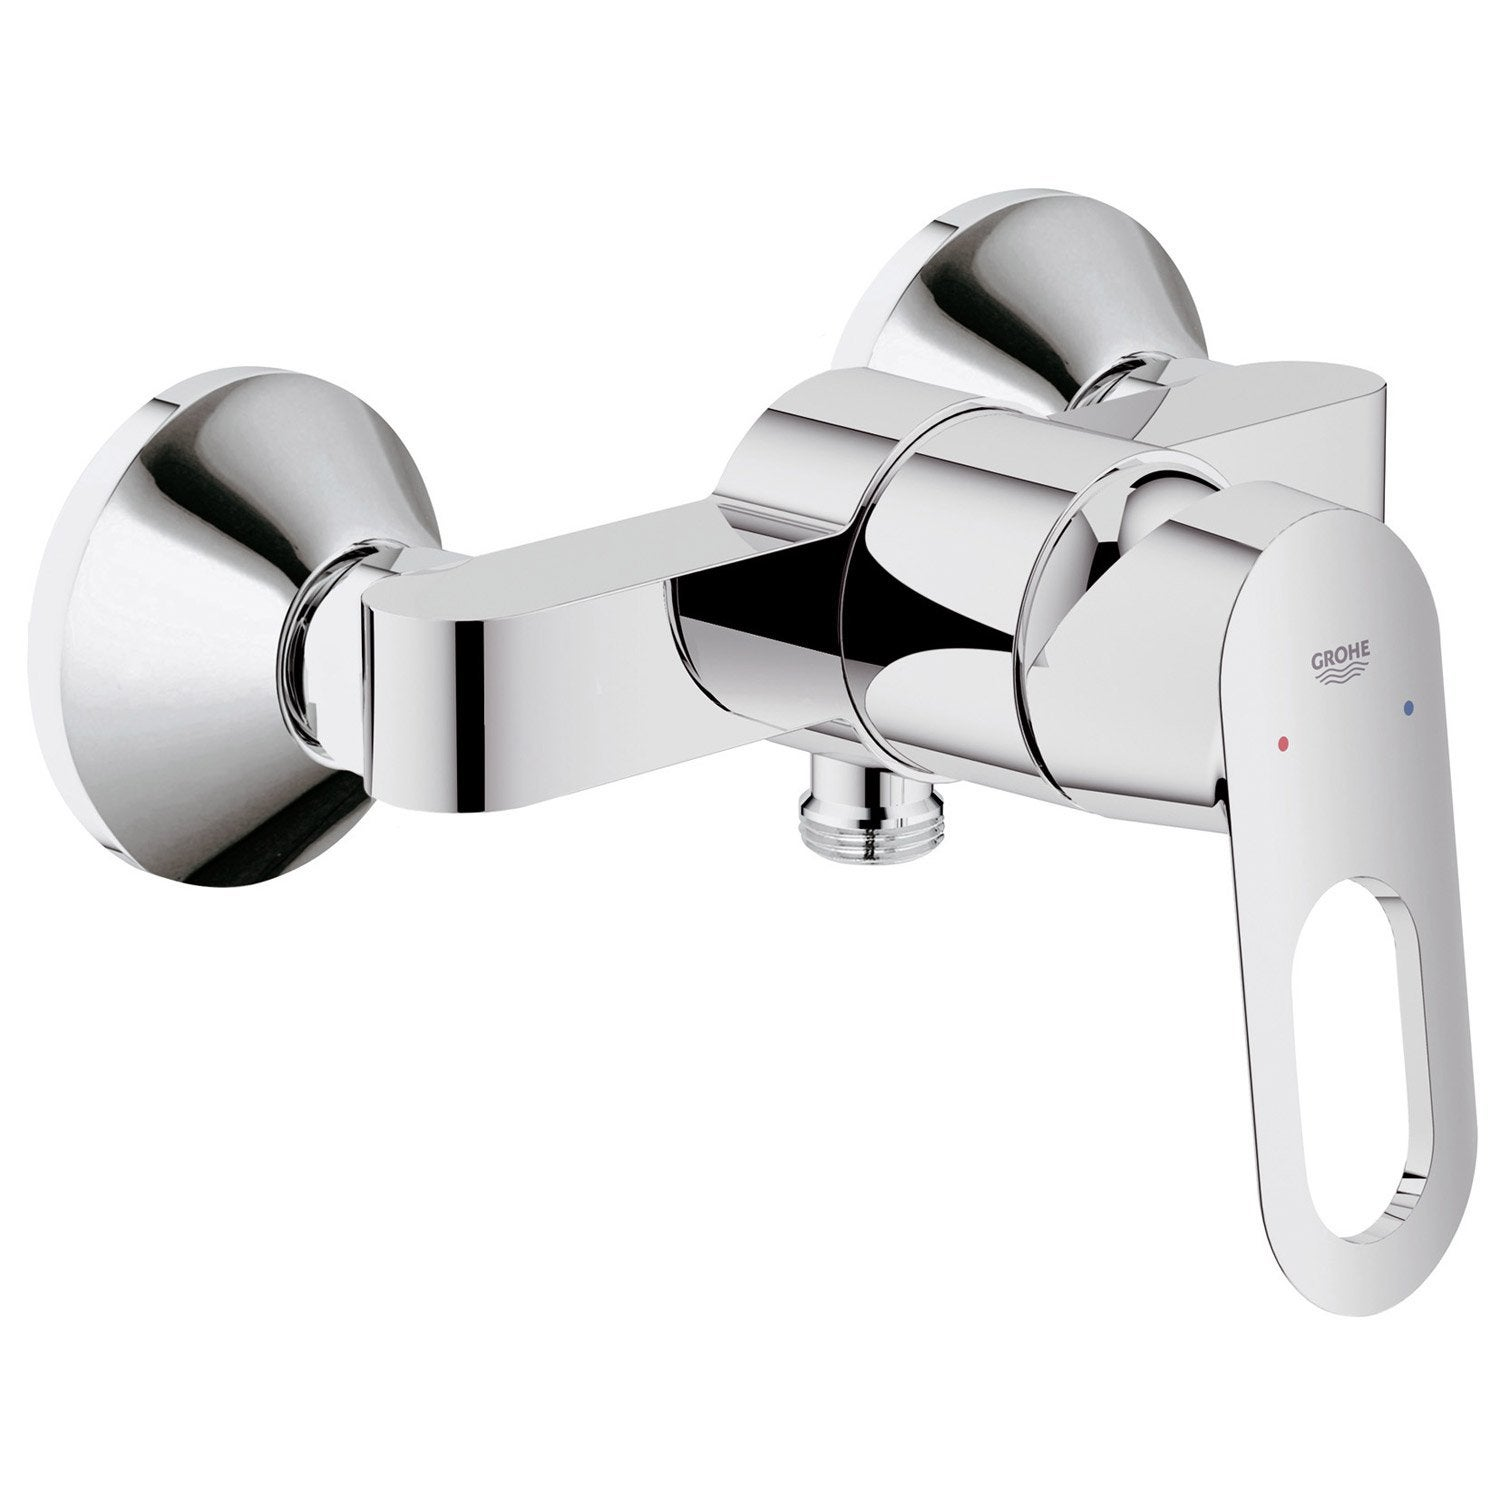 Mitigeur m canique douche chrom grohe start loop leroy for Leroy merlin mitigeur bain douche